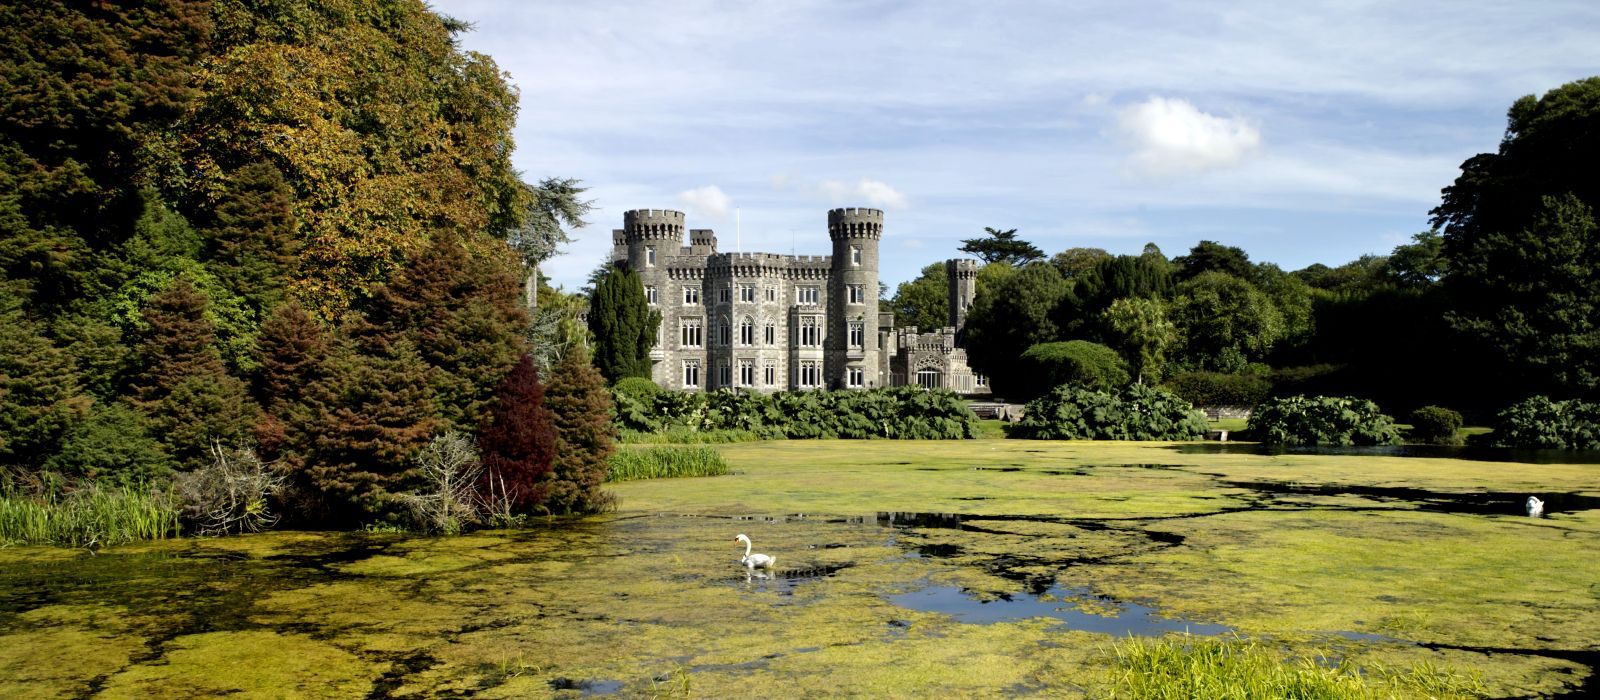 Castle & Gardens, accommodation by Discover Ireland Tours Destination Management Company